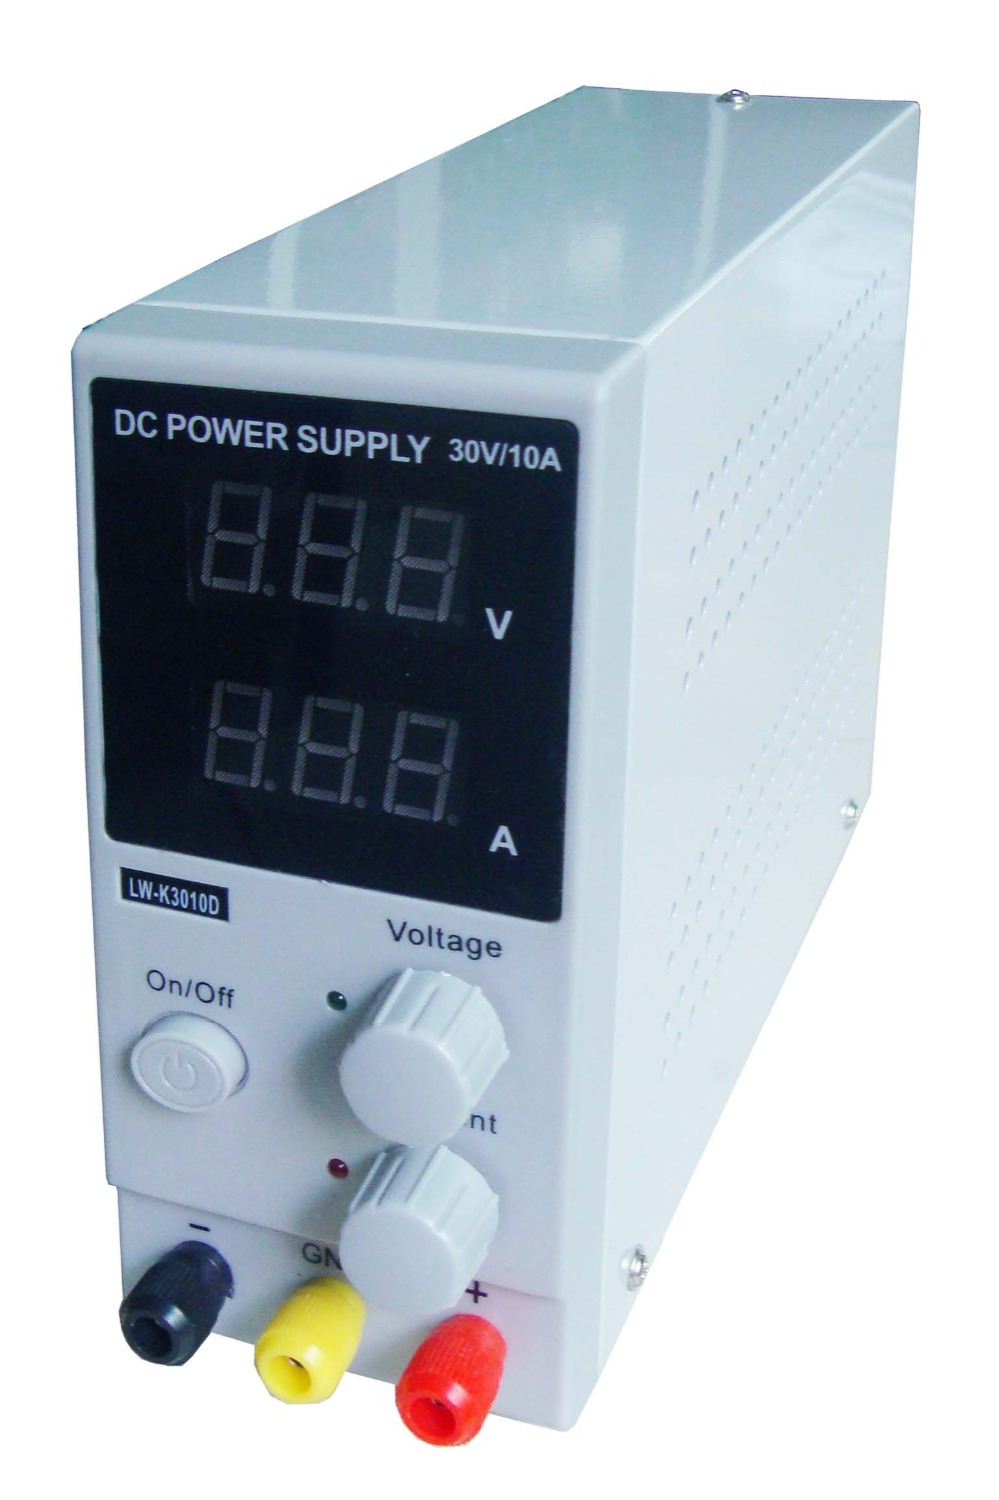 LW DC Power Supply Adjustable Digital Lithium battery charging DC power supply 30V 10A Switching Power supply certification cps 3010ii 0 30v 0 10a low power digital adjustable dc power supply cps3010 switching power supply